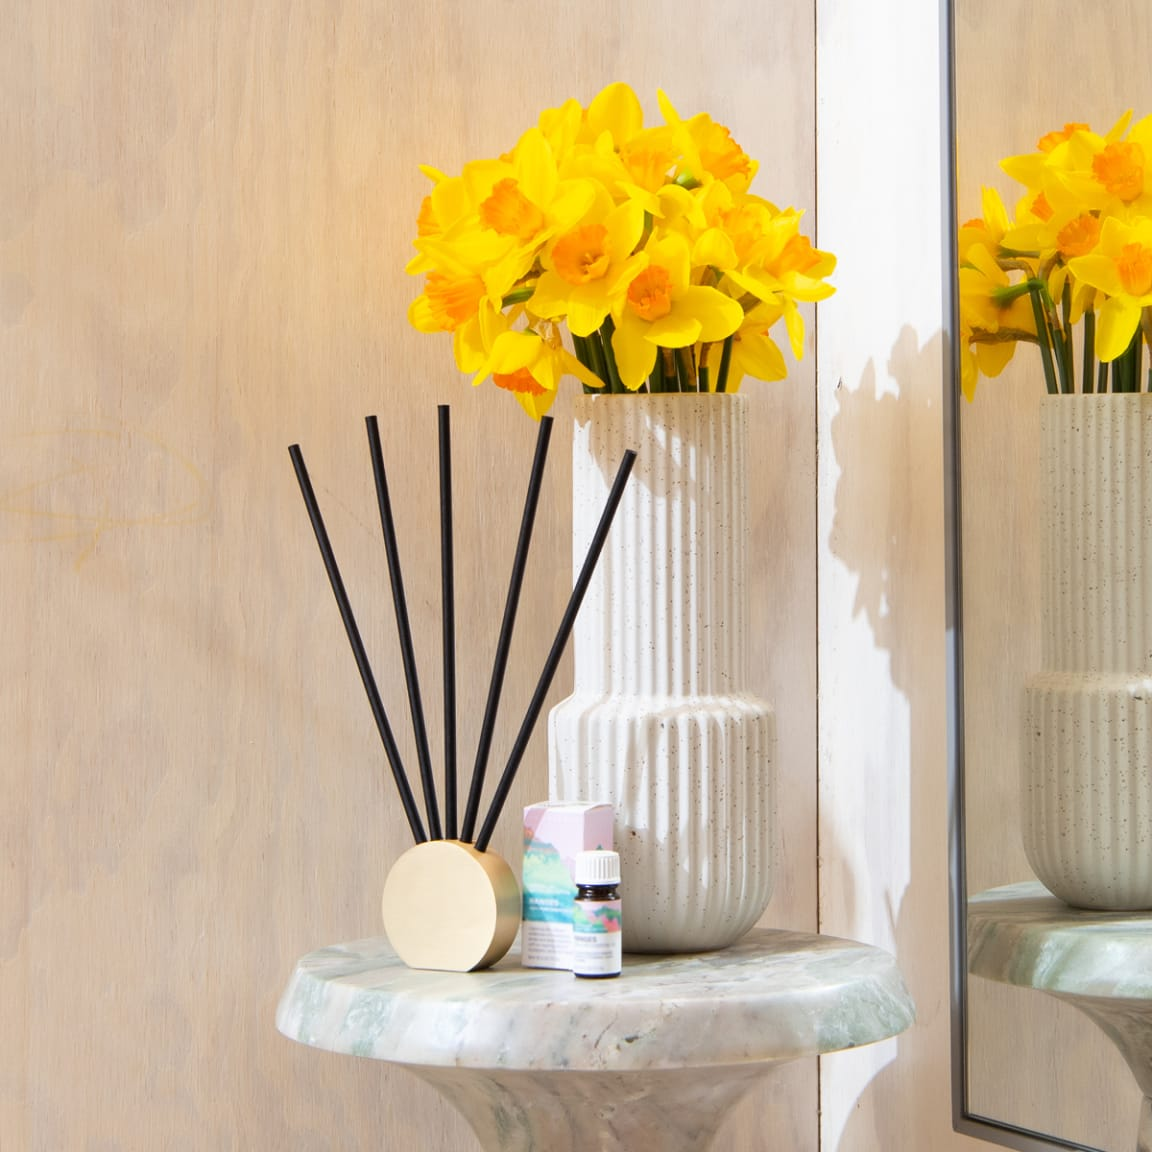 Spring scents: 7 fragrances to refresh your home